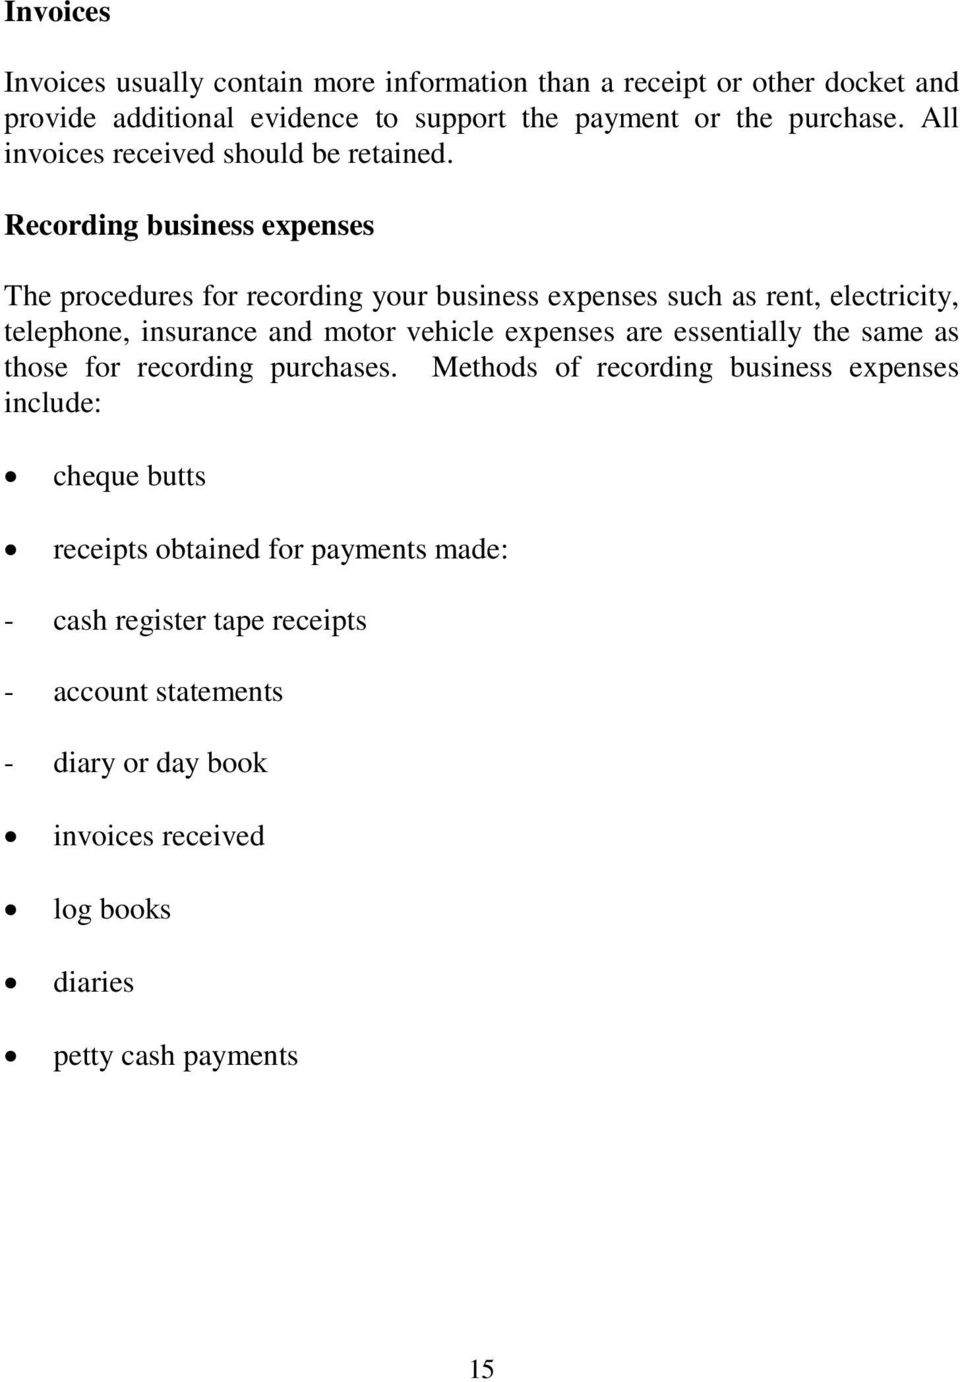 Recording business expenses The procedures for recording your business expenses such as rent, electricity, telephone, insurance and motor vehicle expenses are